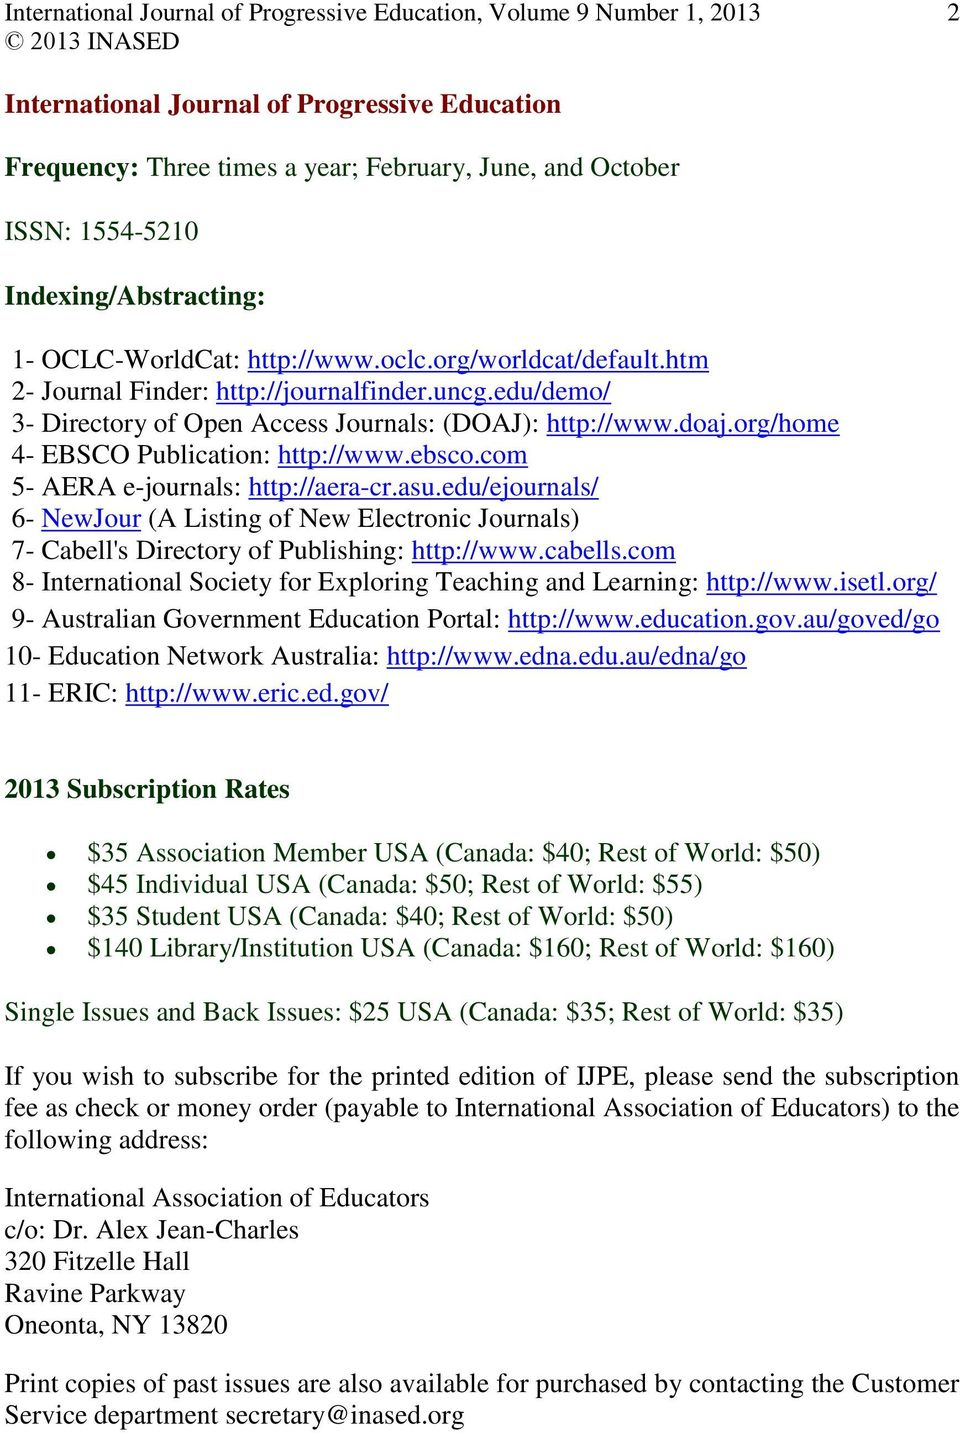 com 5- AERA e-journals: http://aera-cr.asu.edu/ejournals/ 6- NewJour (A Listing of New Electronic Journals) 7- Cabell's Directory of Publishing: http://www.cabells.